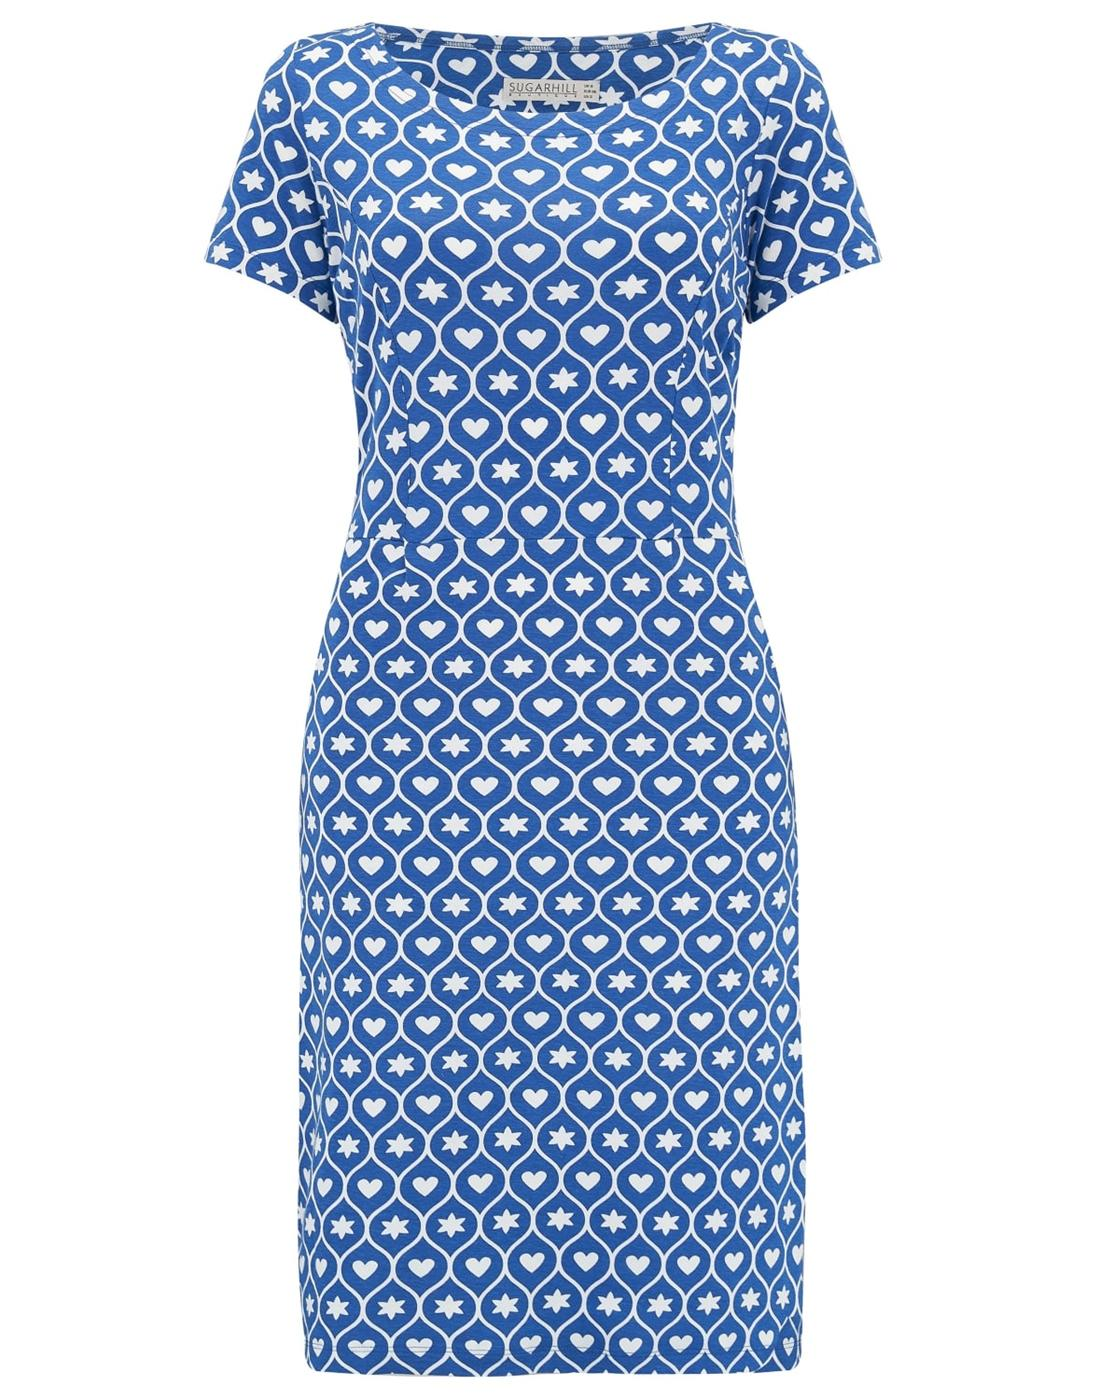 Elliot SUGARHILL BOUTIQUE Retro 60s Shift Dress